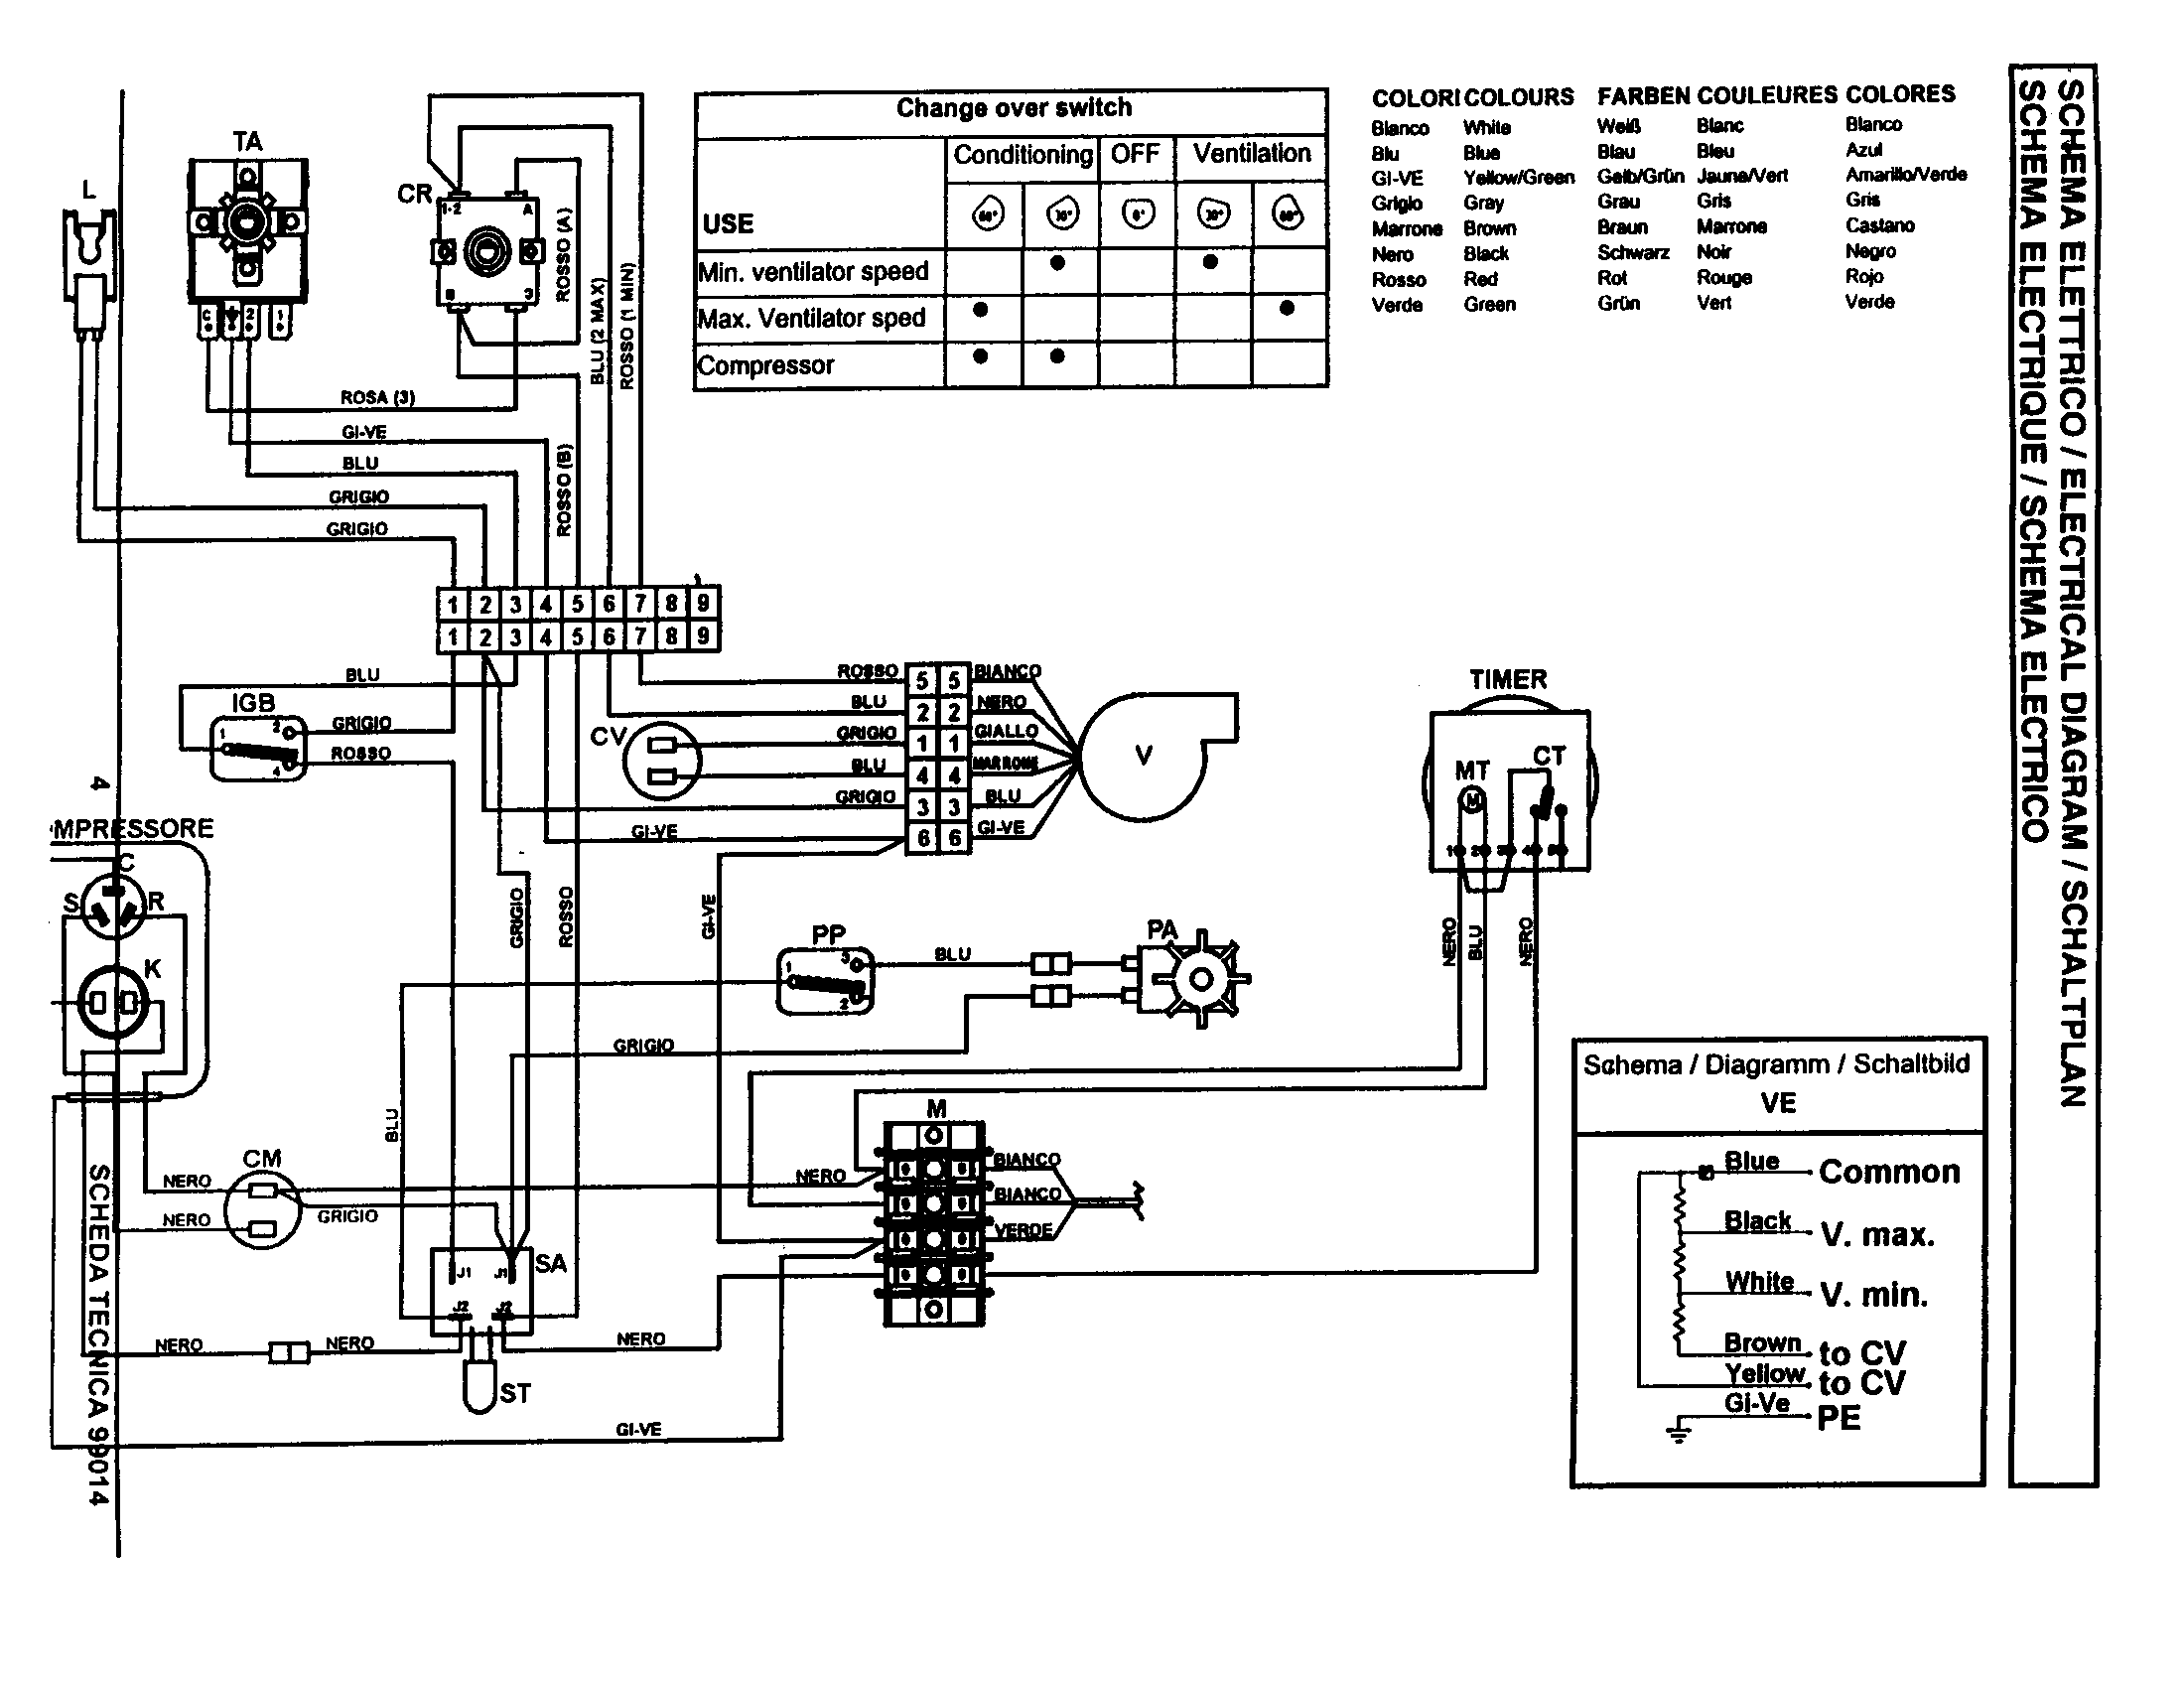 New Wiring Diagram Kompresor Ac Diagram Diagramtemplate Diagramsample Diagram Electrical Circuit Diagram Air Conditioning Unit